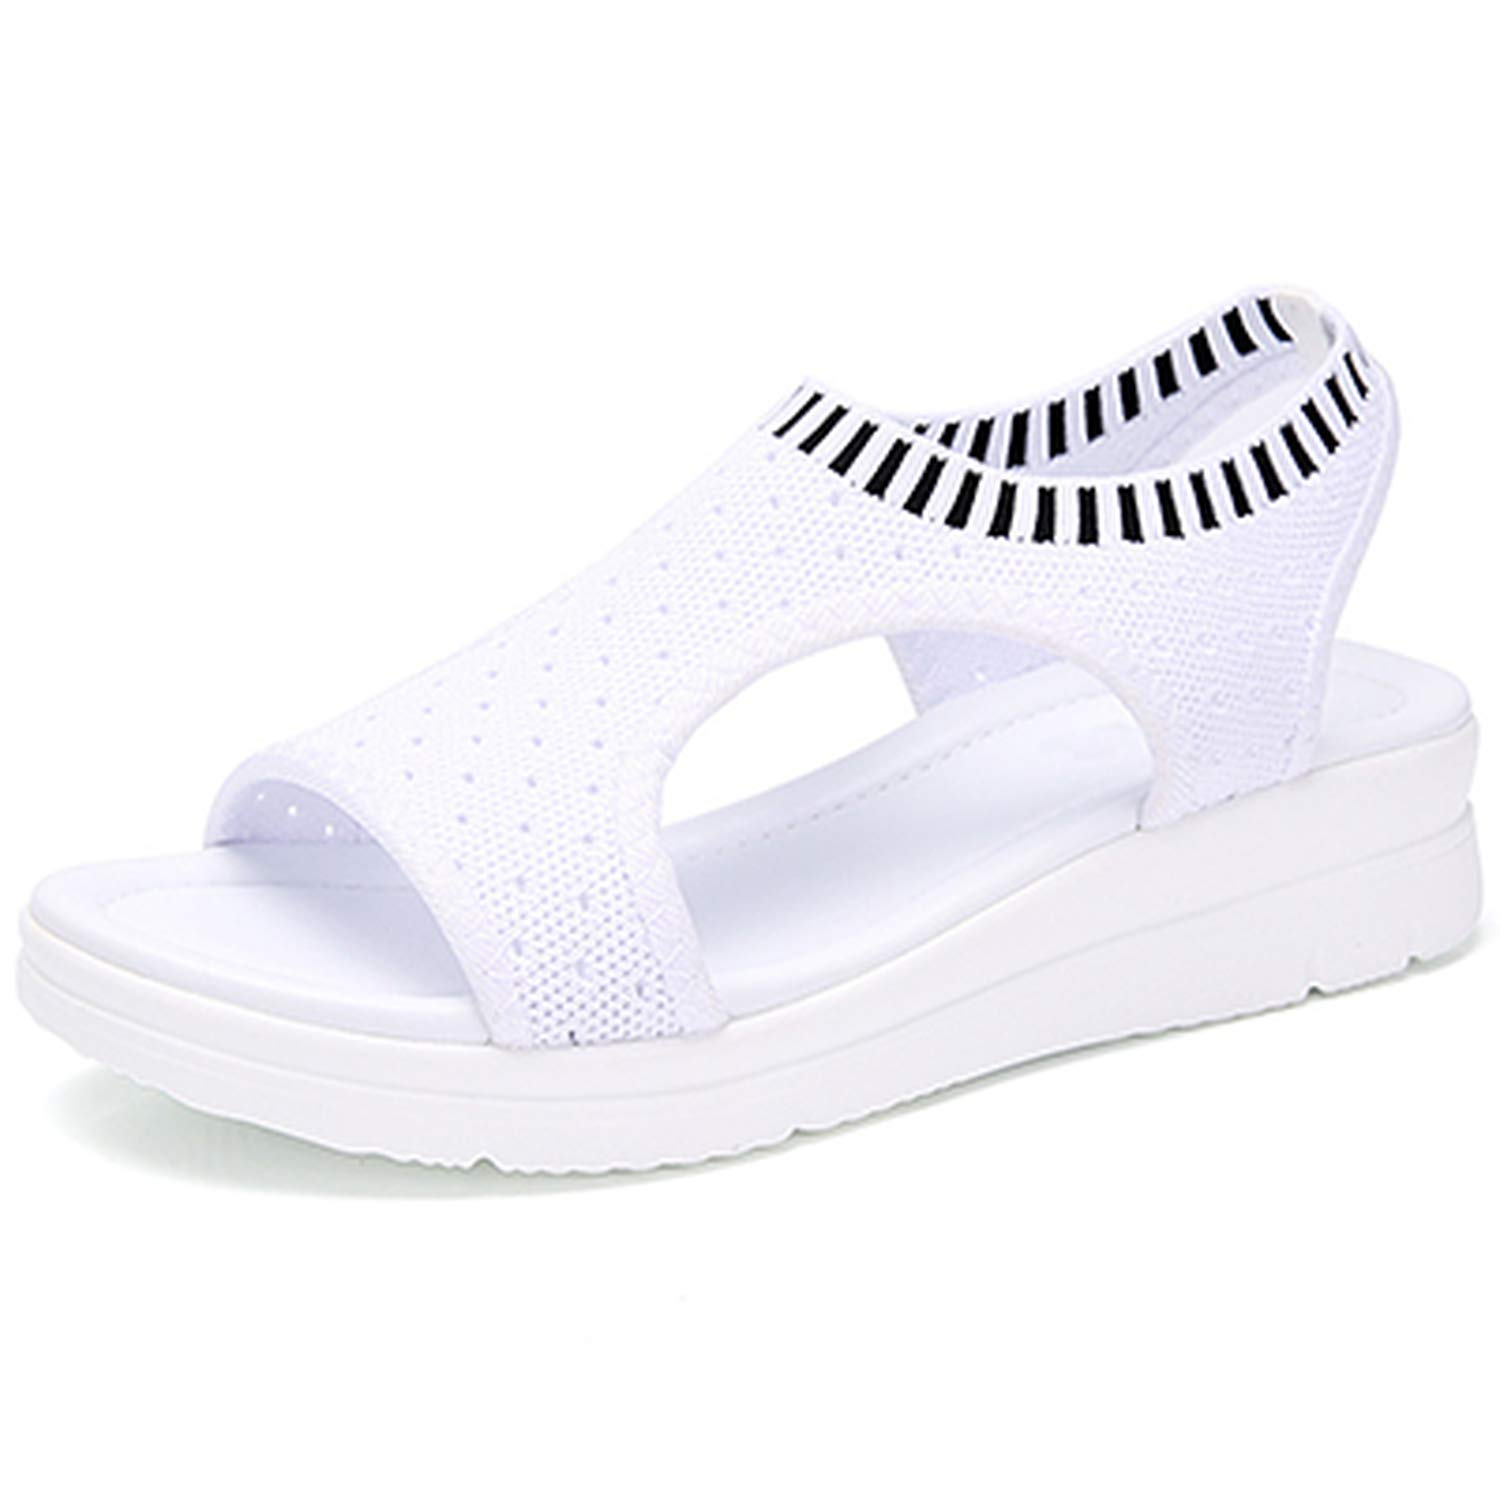 White Zeuow Fashion Women Sandals Breathable Comfort Shopping Ladies Walking shoes Summer Platform Black Sandal